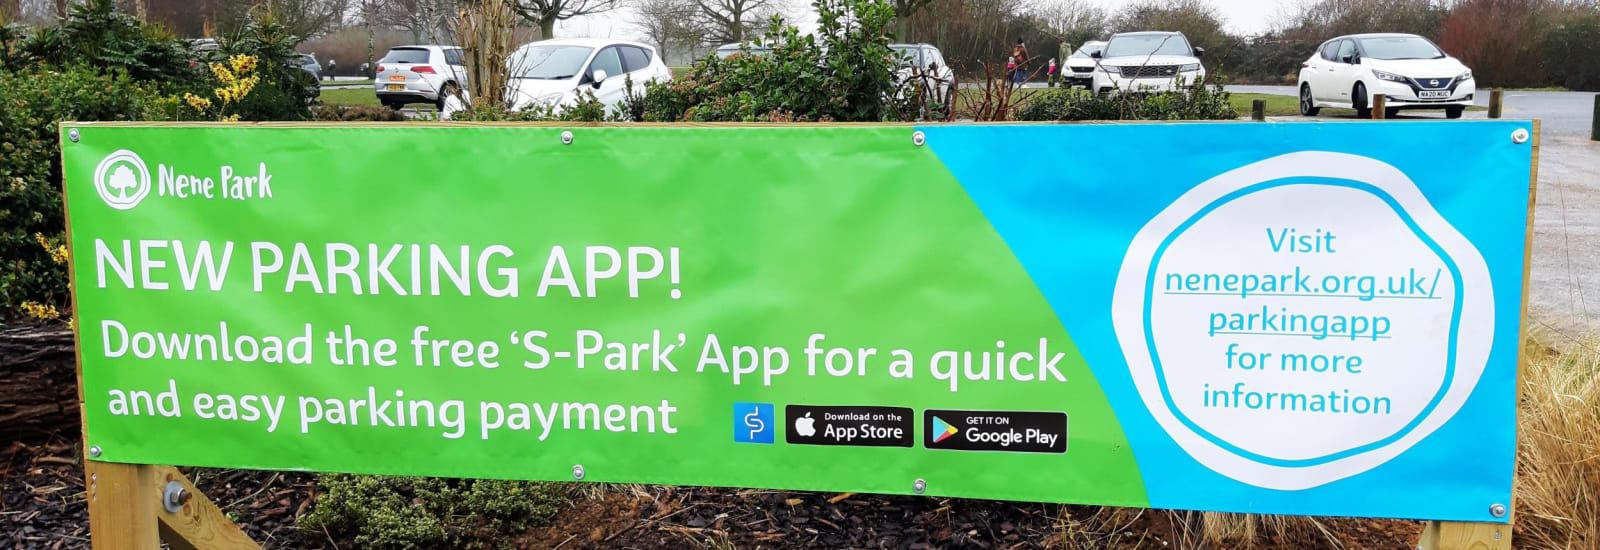 Announcing our new parking payment app